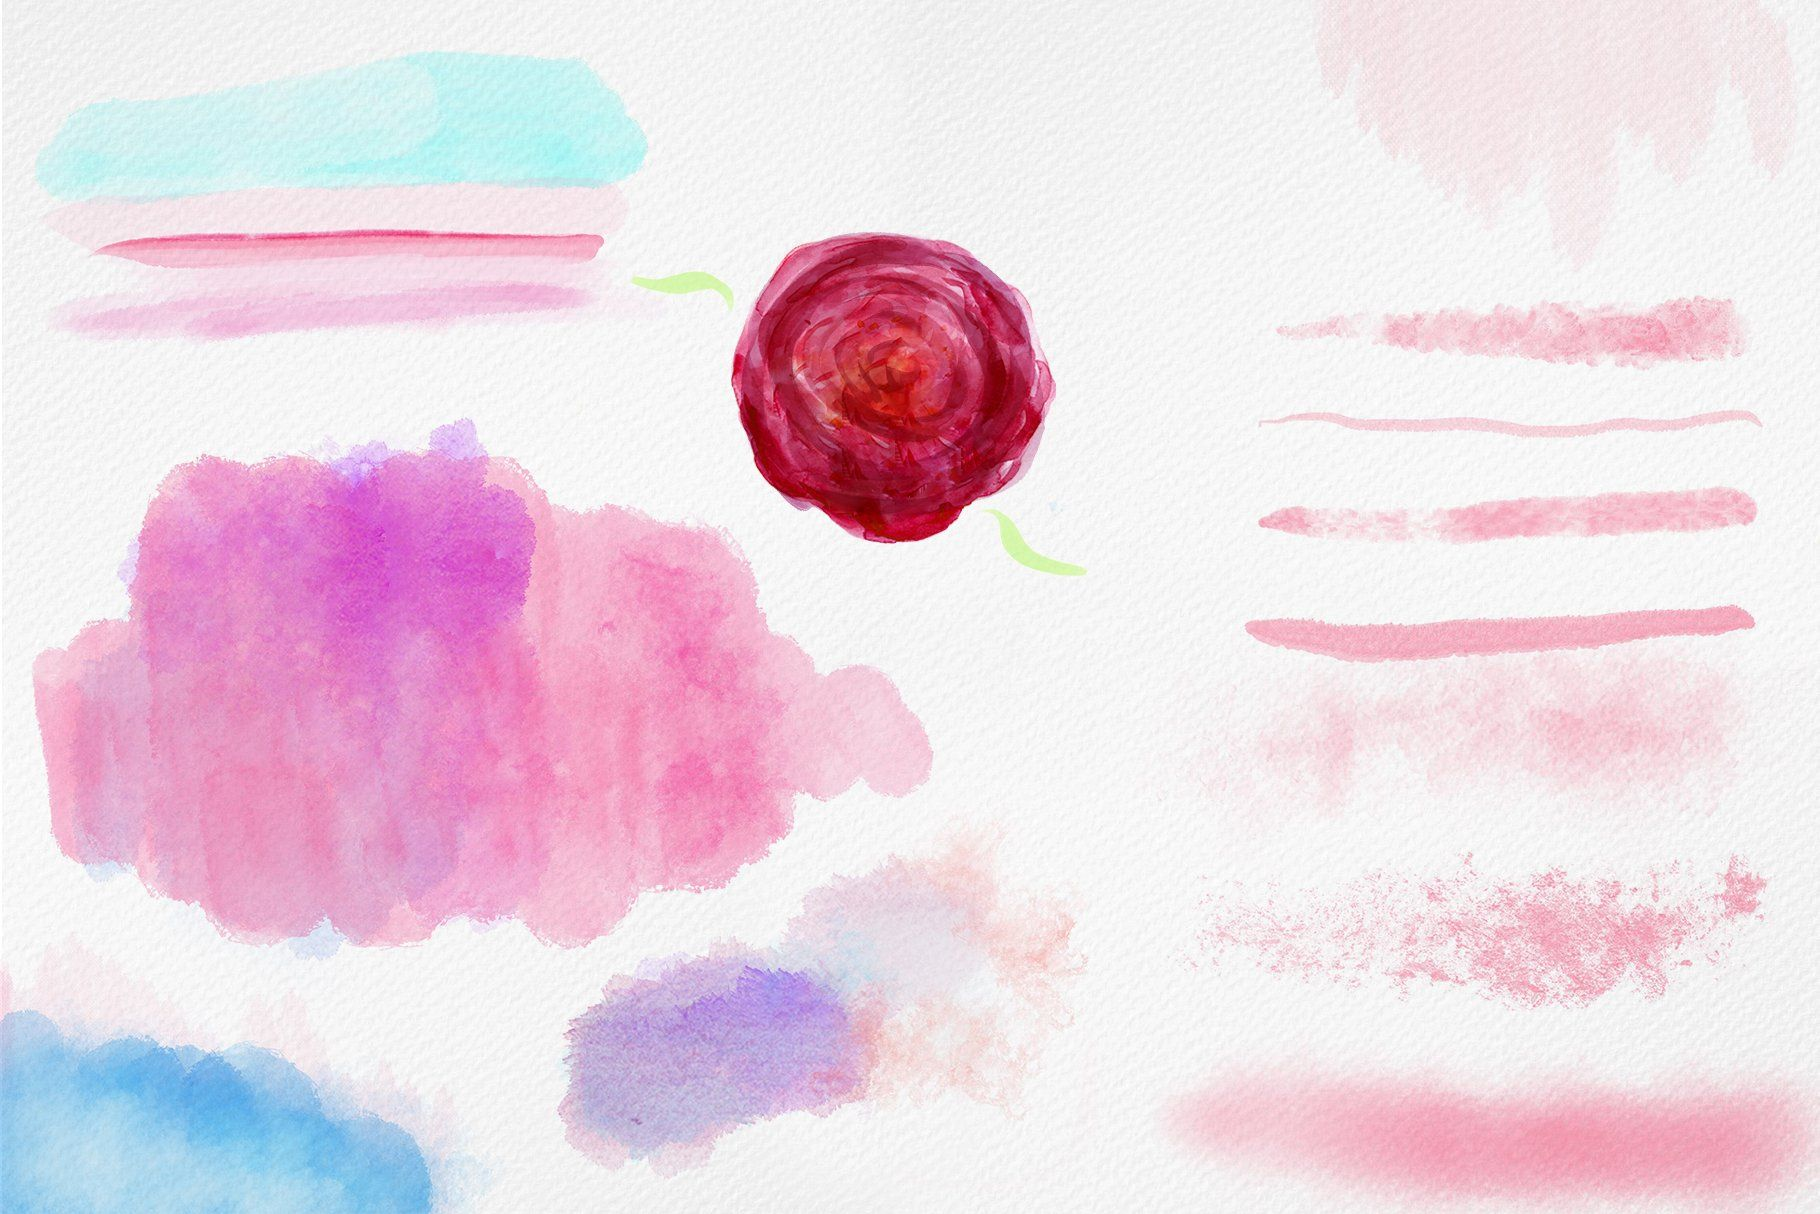 Watercolor Procreate Brushes Sponsored Watercolor Projects